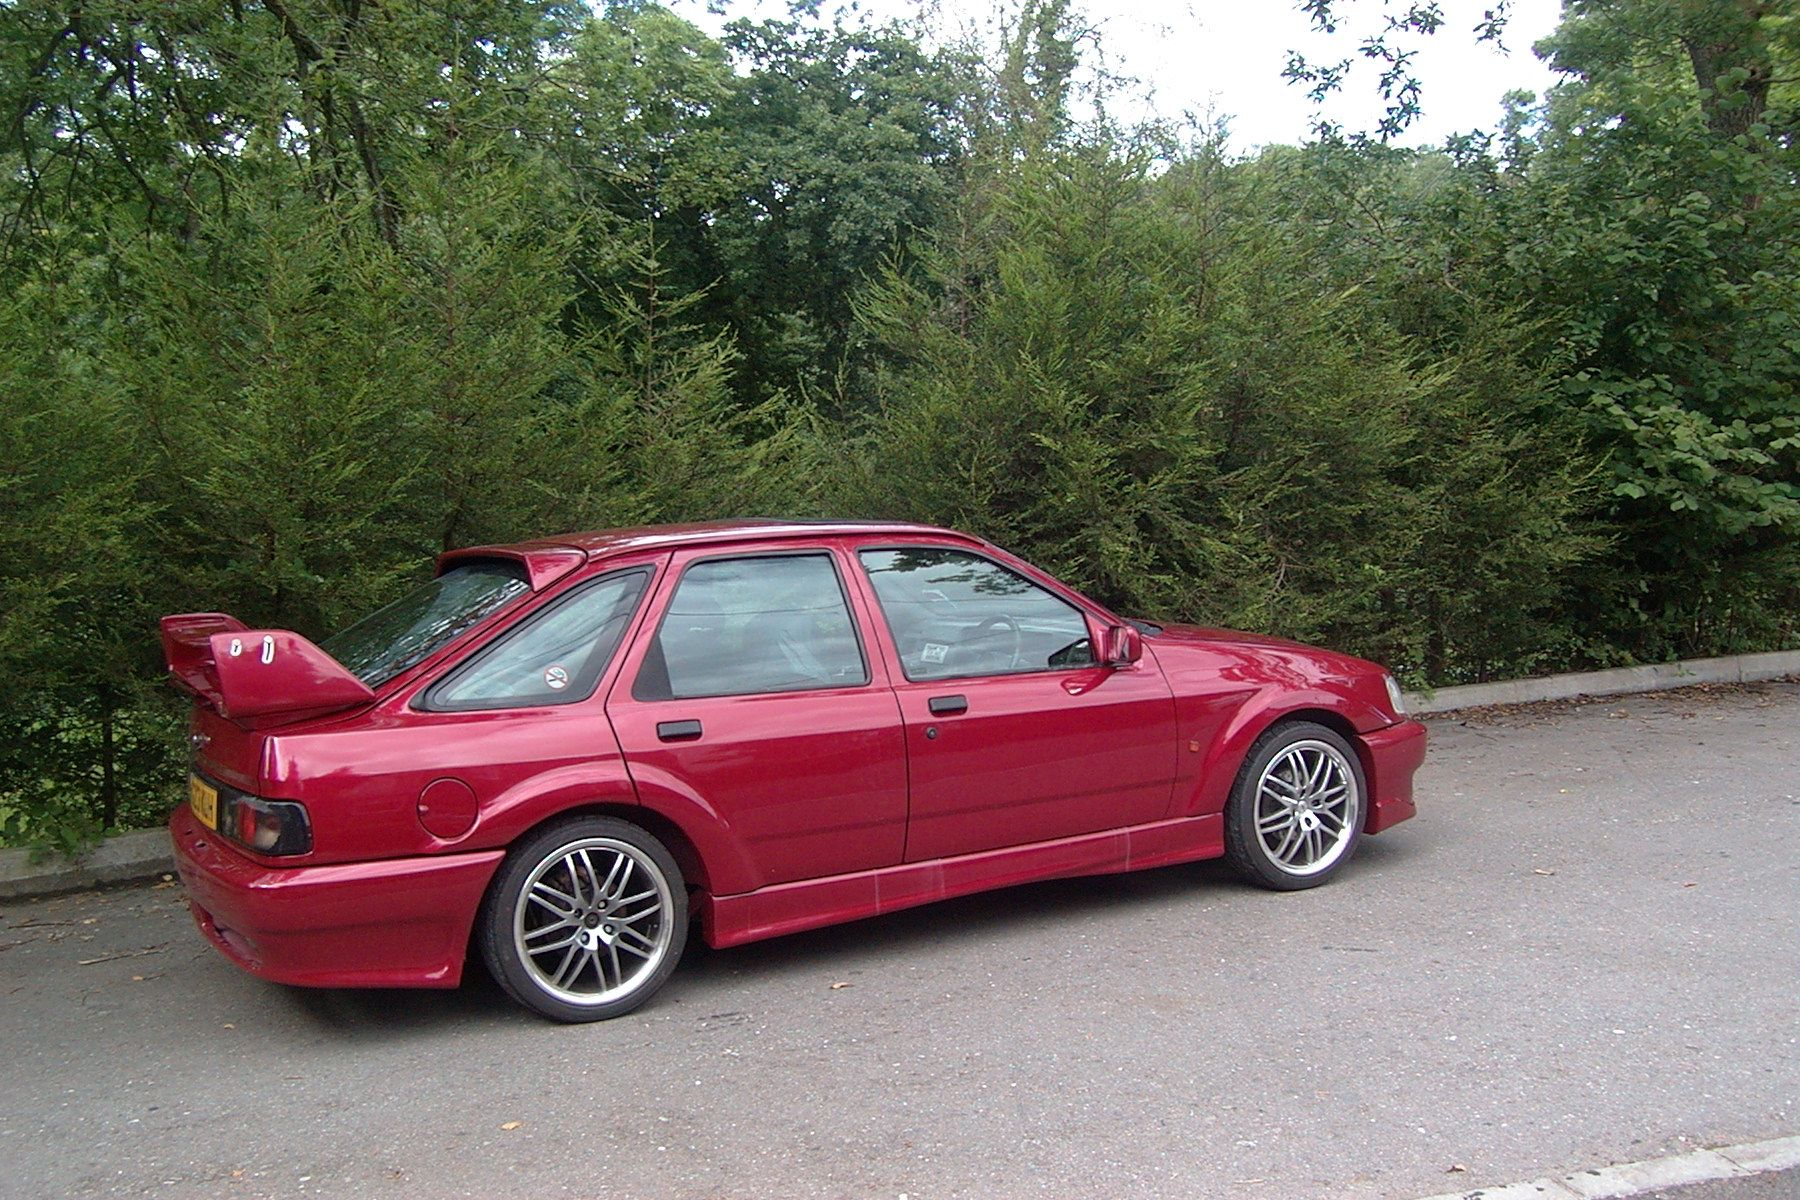 Steve S Ford Sierra Xr4x4 V6 Cosworth Custom Car Custom Cars